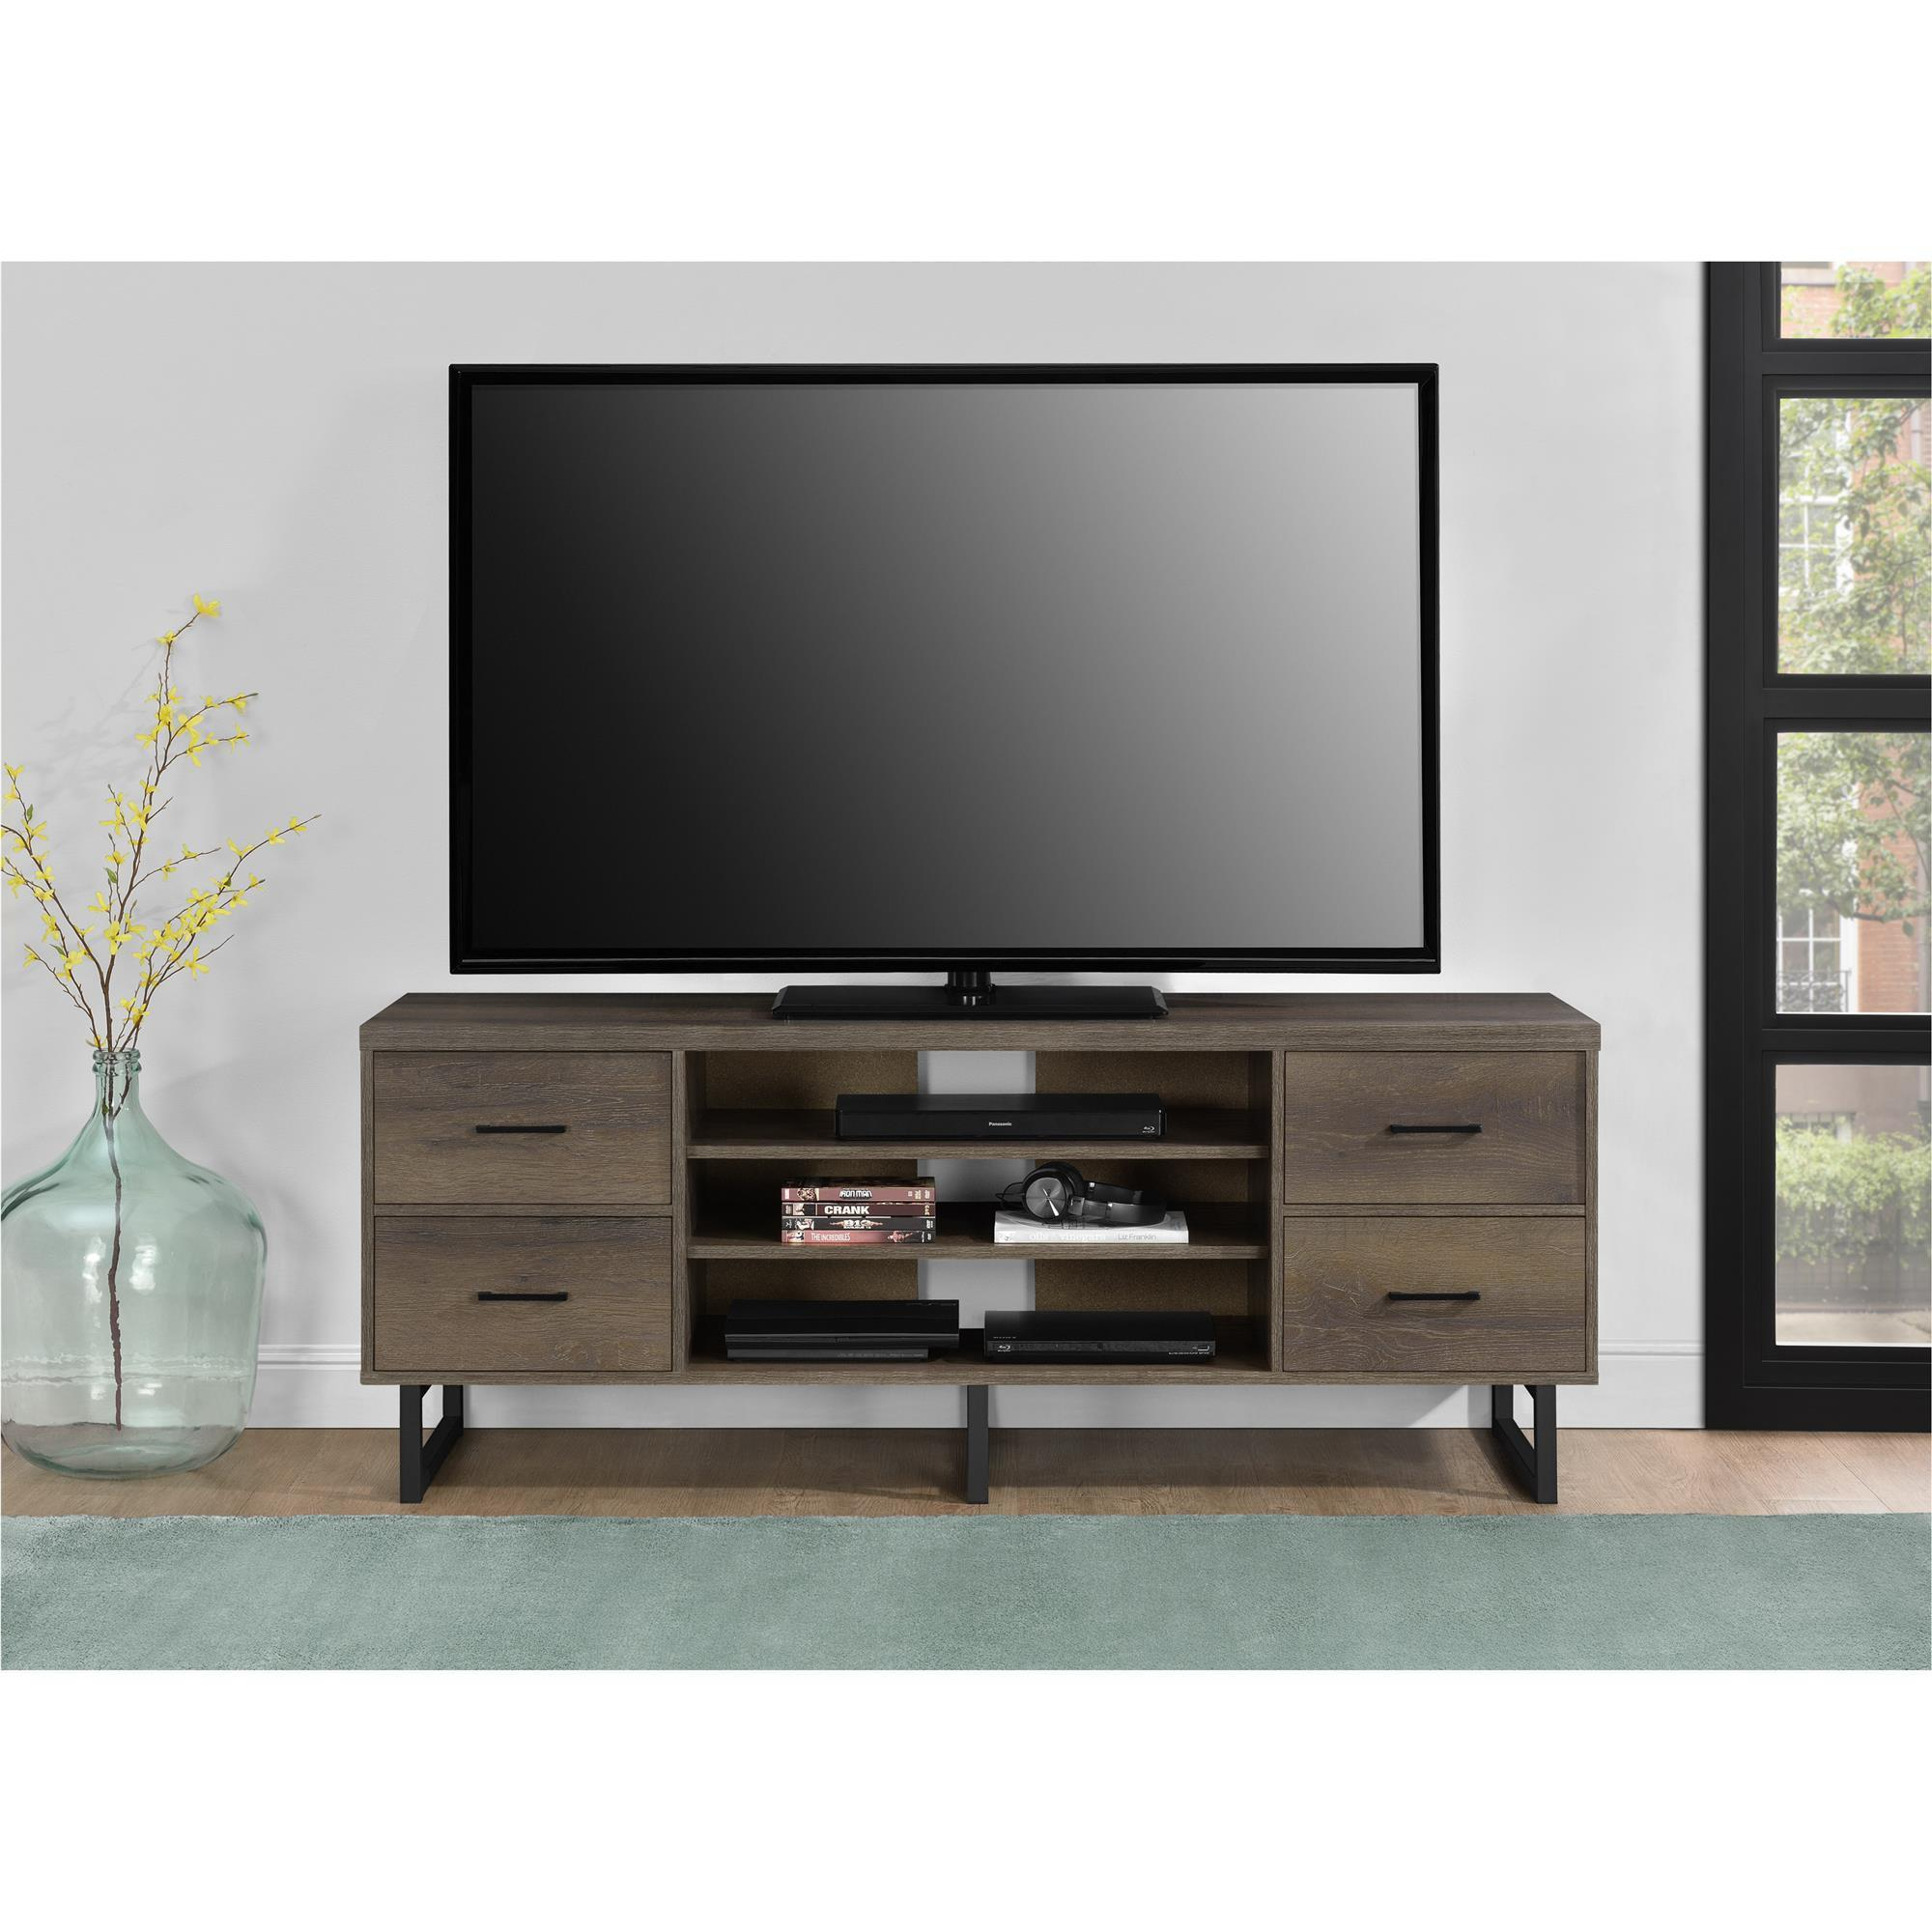 Shop Ameriwood Home Candon Sonoma Mocha Oak 60-Inch Tv Stand With with regard to Canyon 54 Inch Tv Stands (Image 19 of 30)